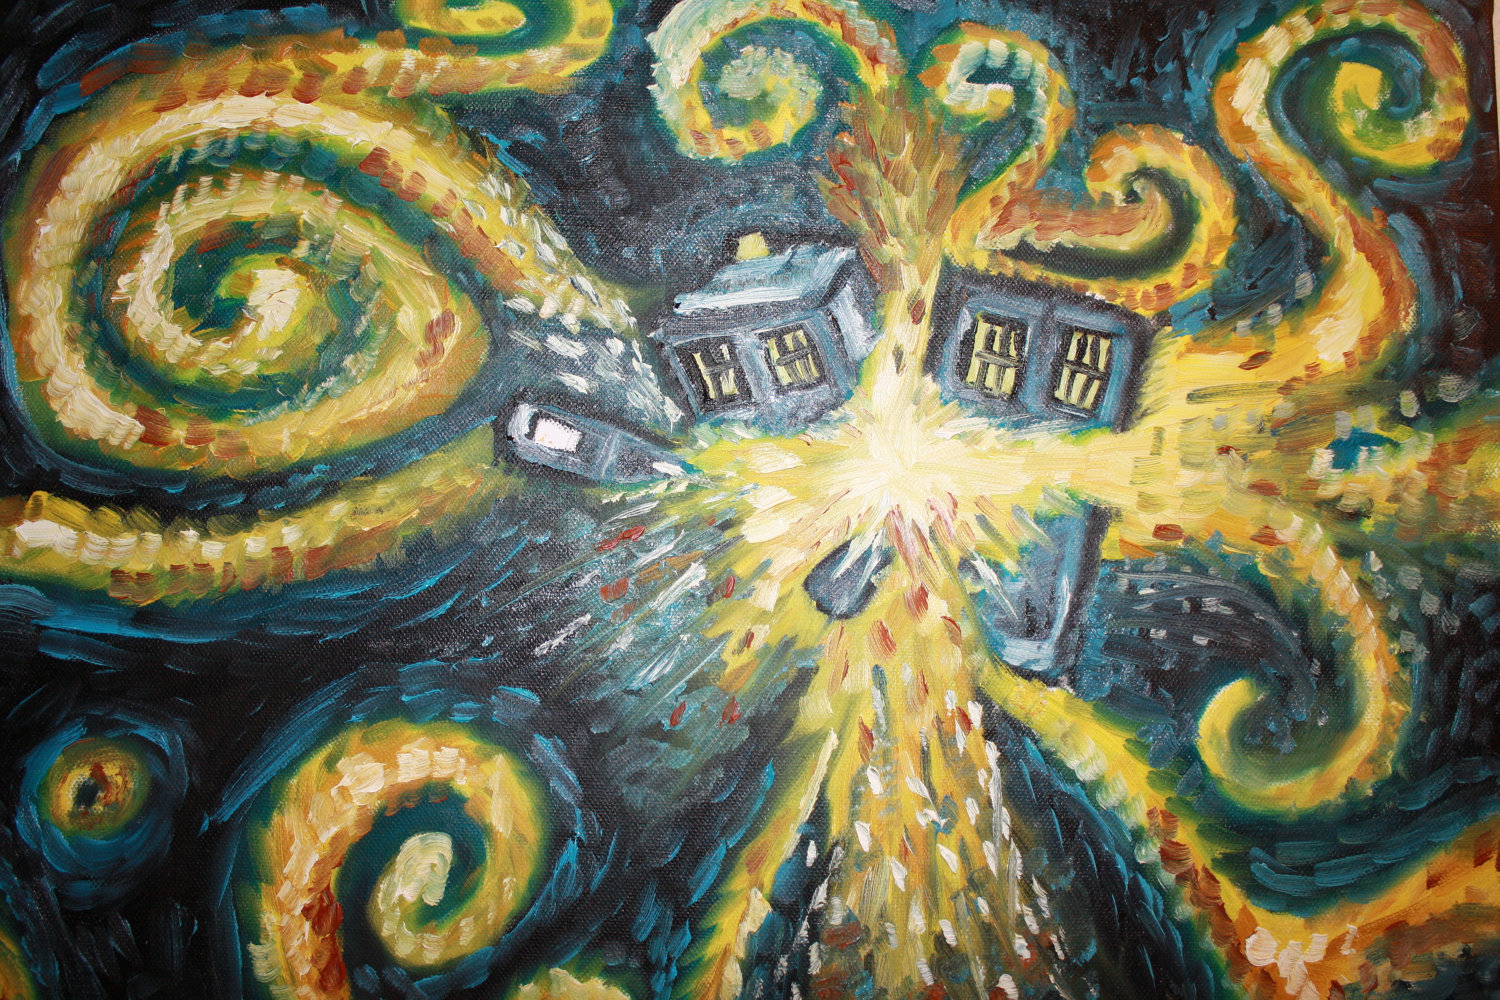 tardis vincent van gogh doctor who starry night 1280x1031 wallpaper 1500x1000